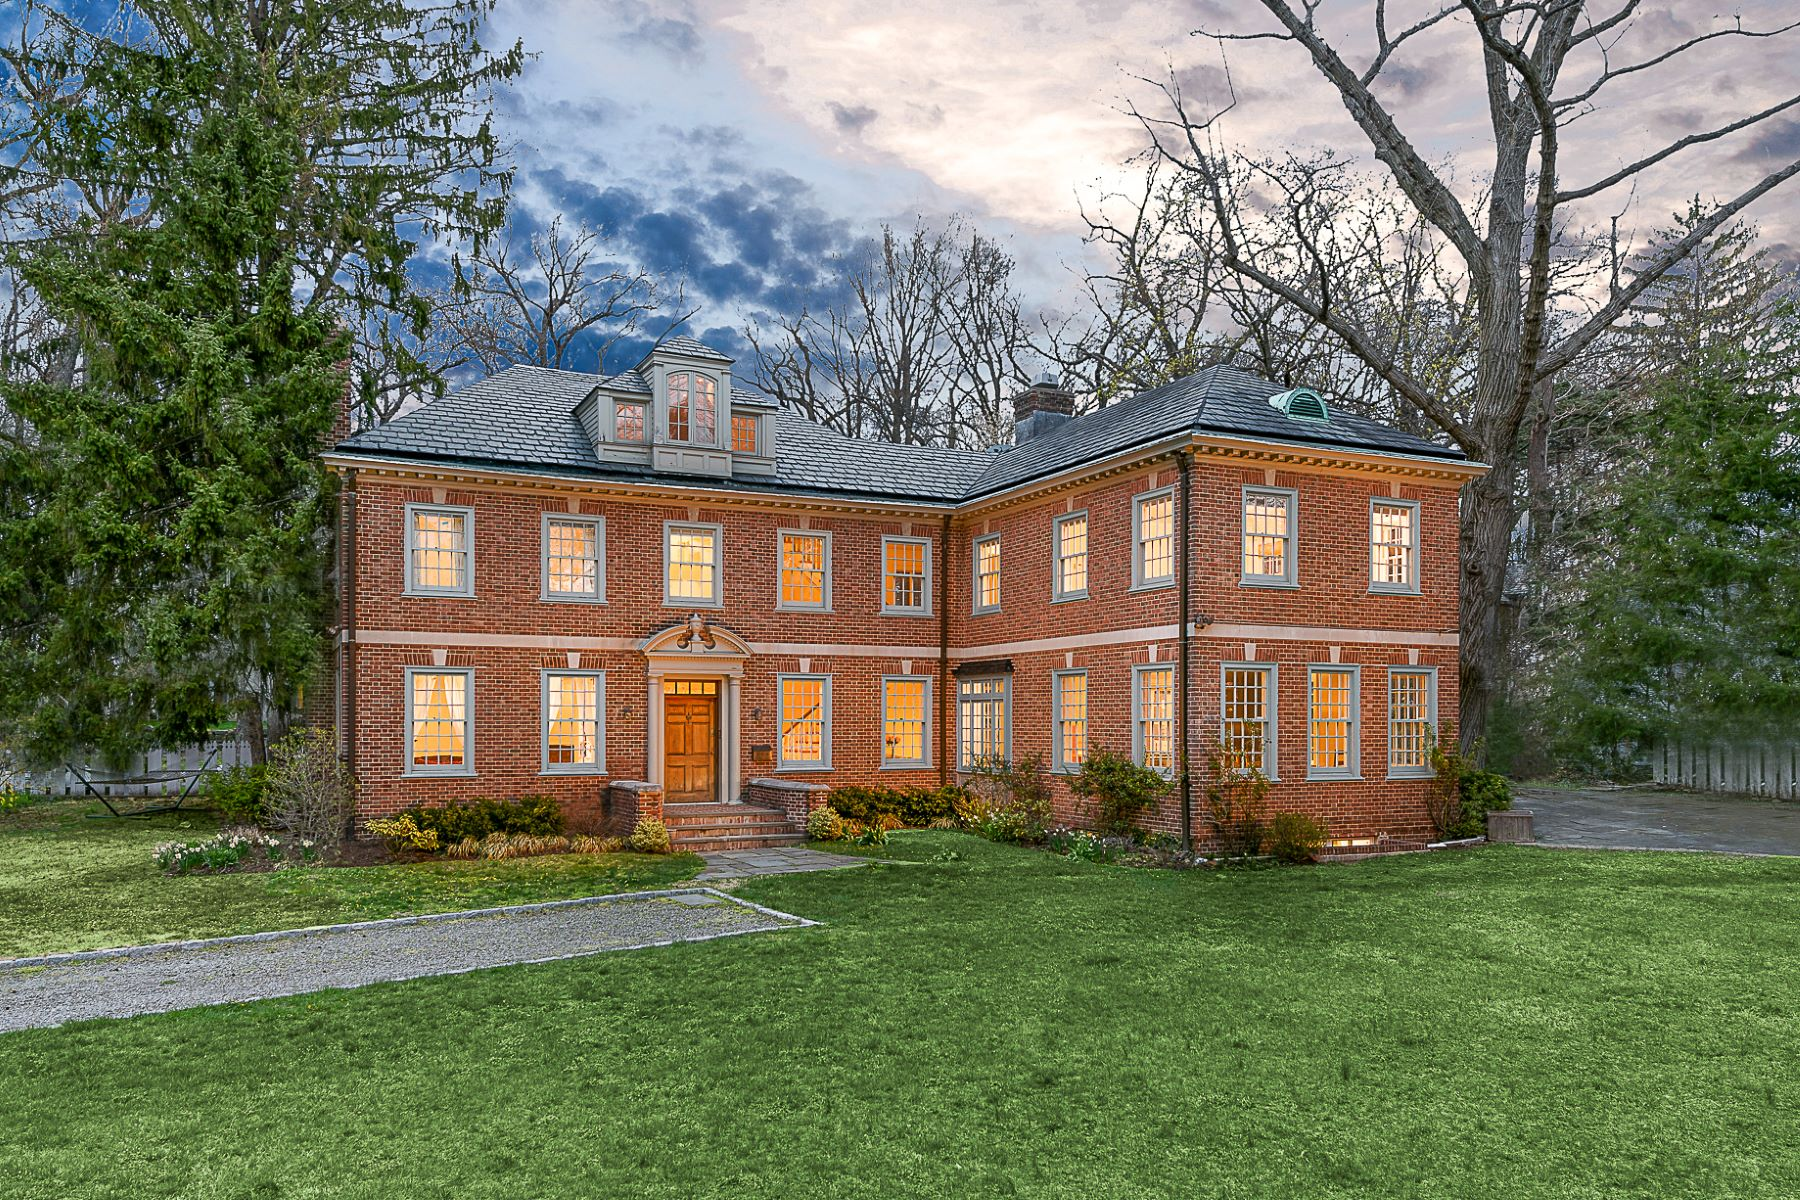 Single Family Home for Sale at Magnificent Georgian in Fieldston 4524 Greystone Avenue, Riverdale, New York, 10471 United States